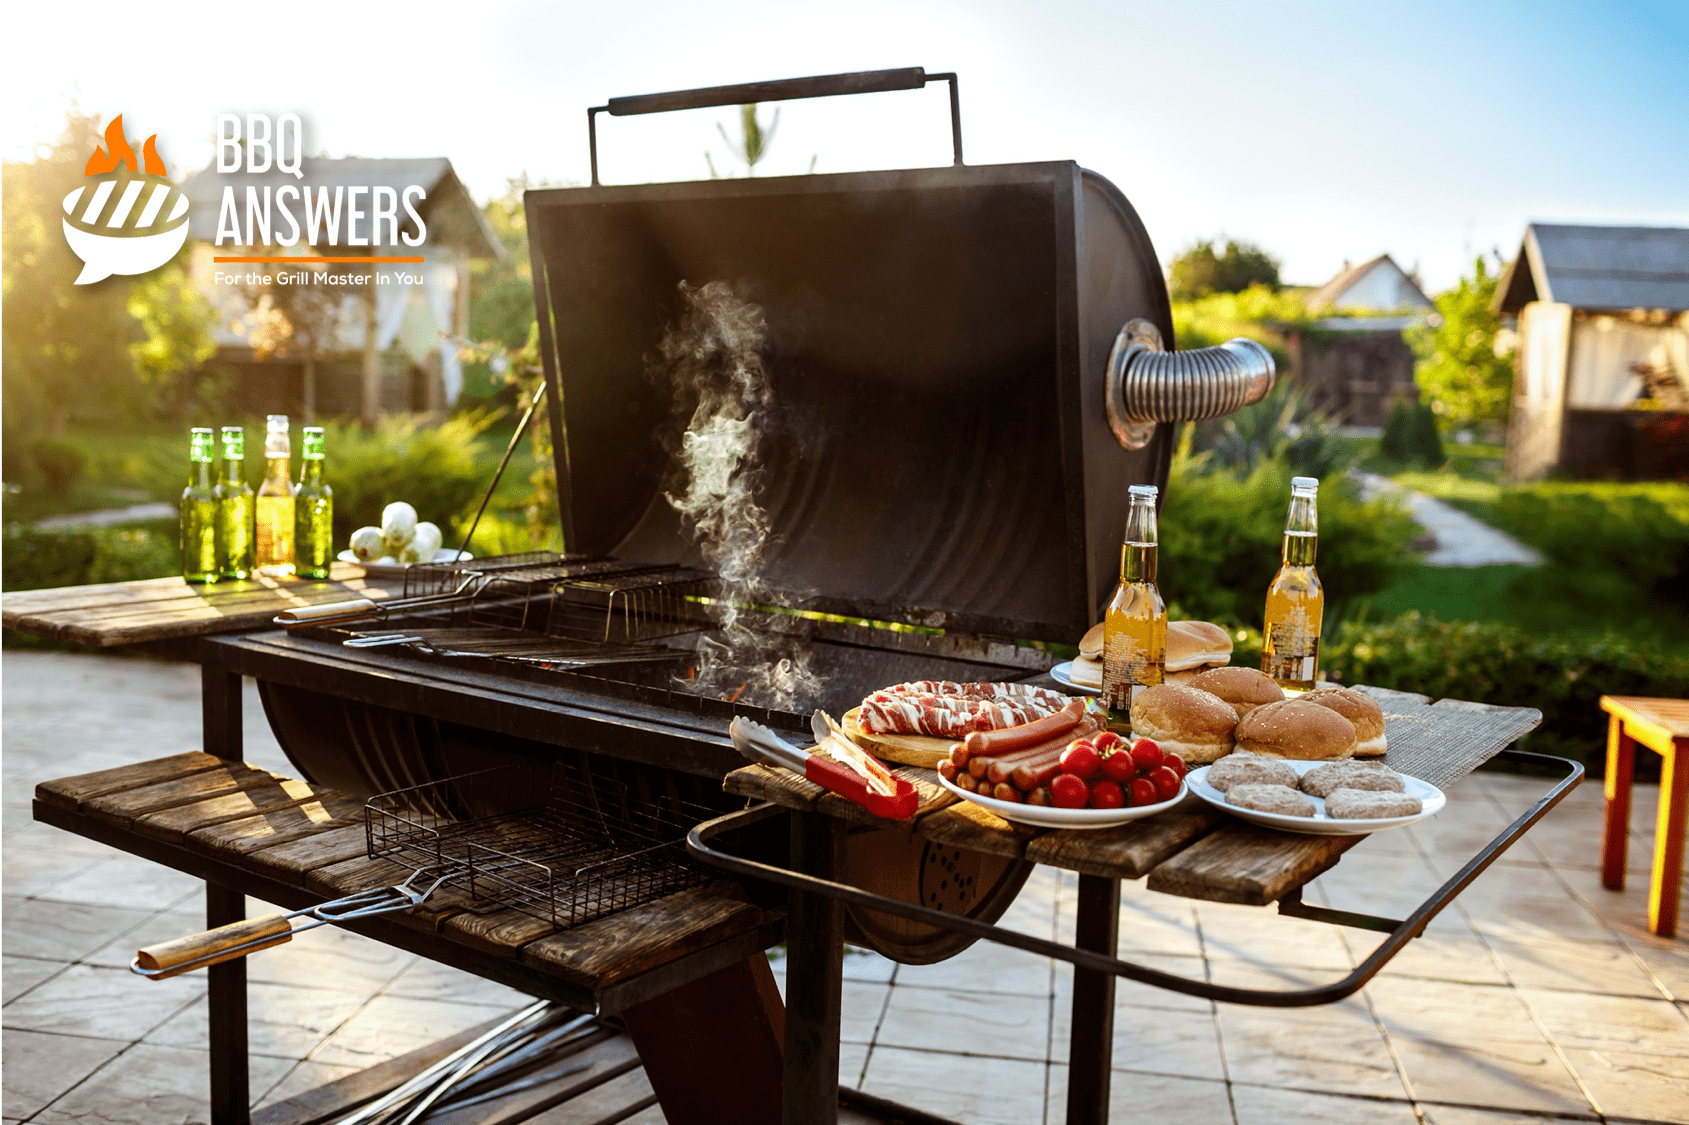 Smoker Grill | Guide to Grill Types | BBQanswers